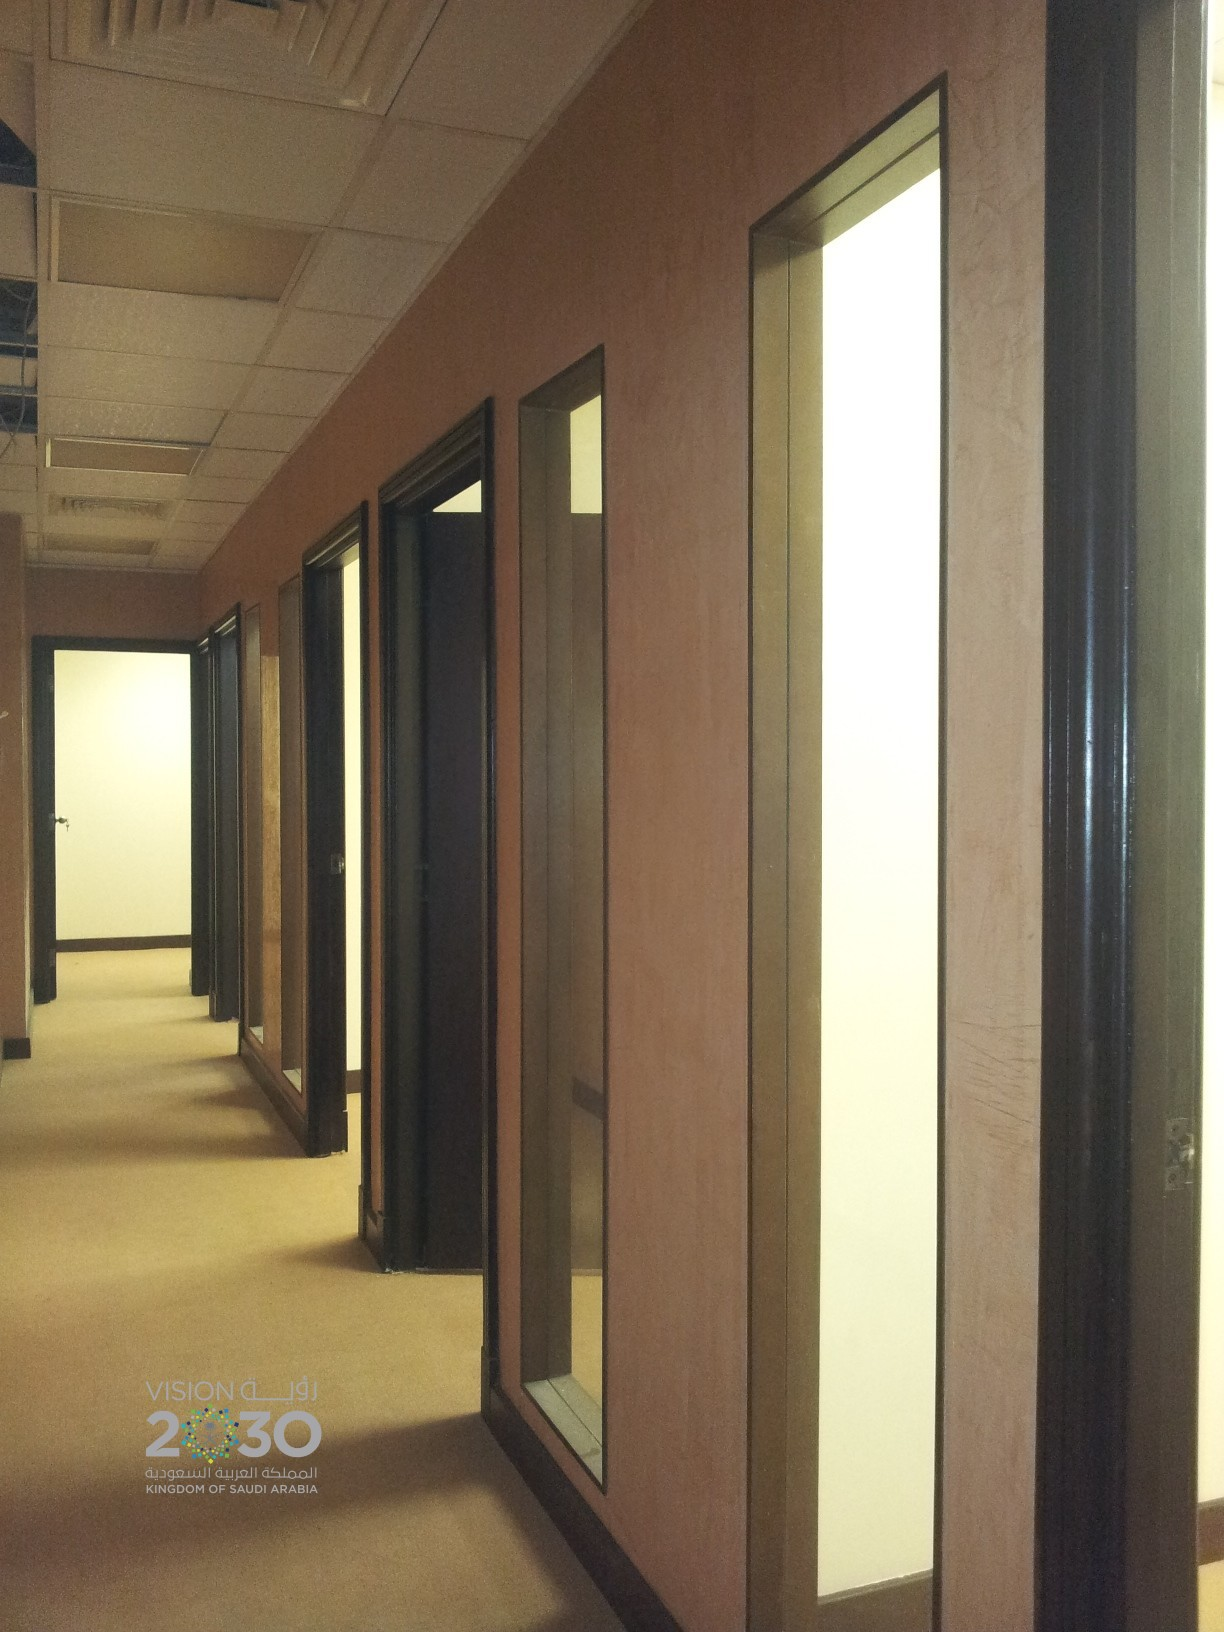 Office Villa FOR RENT Byoutath  Business Centre Jeddah